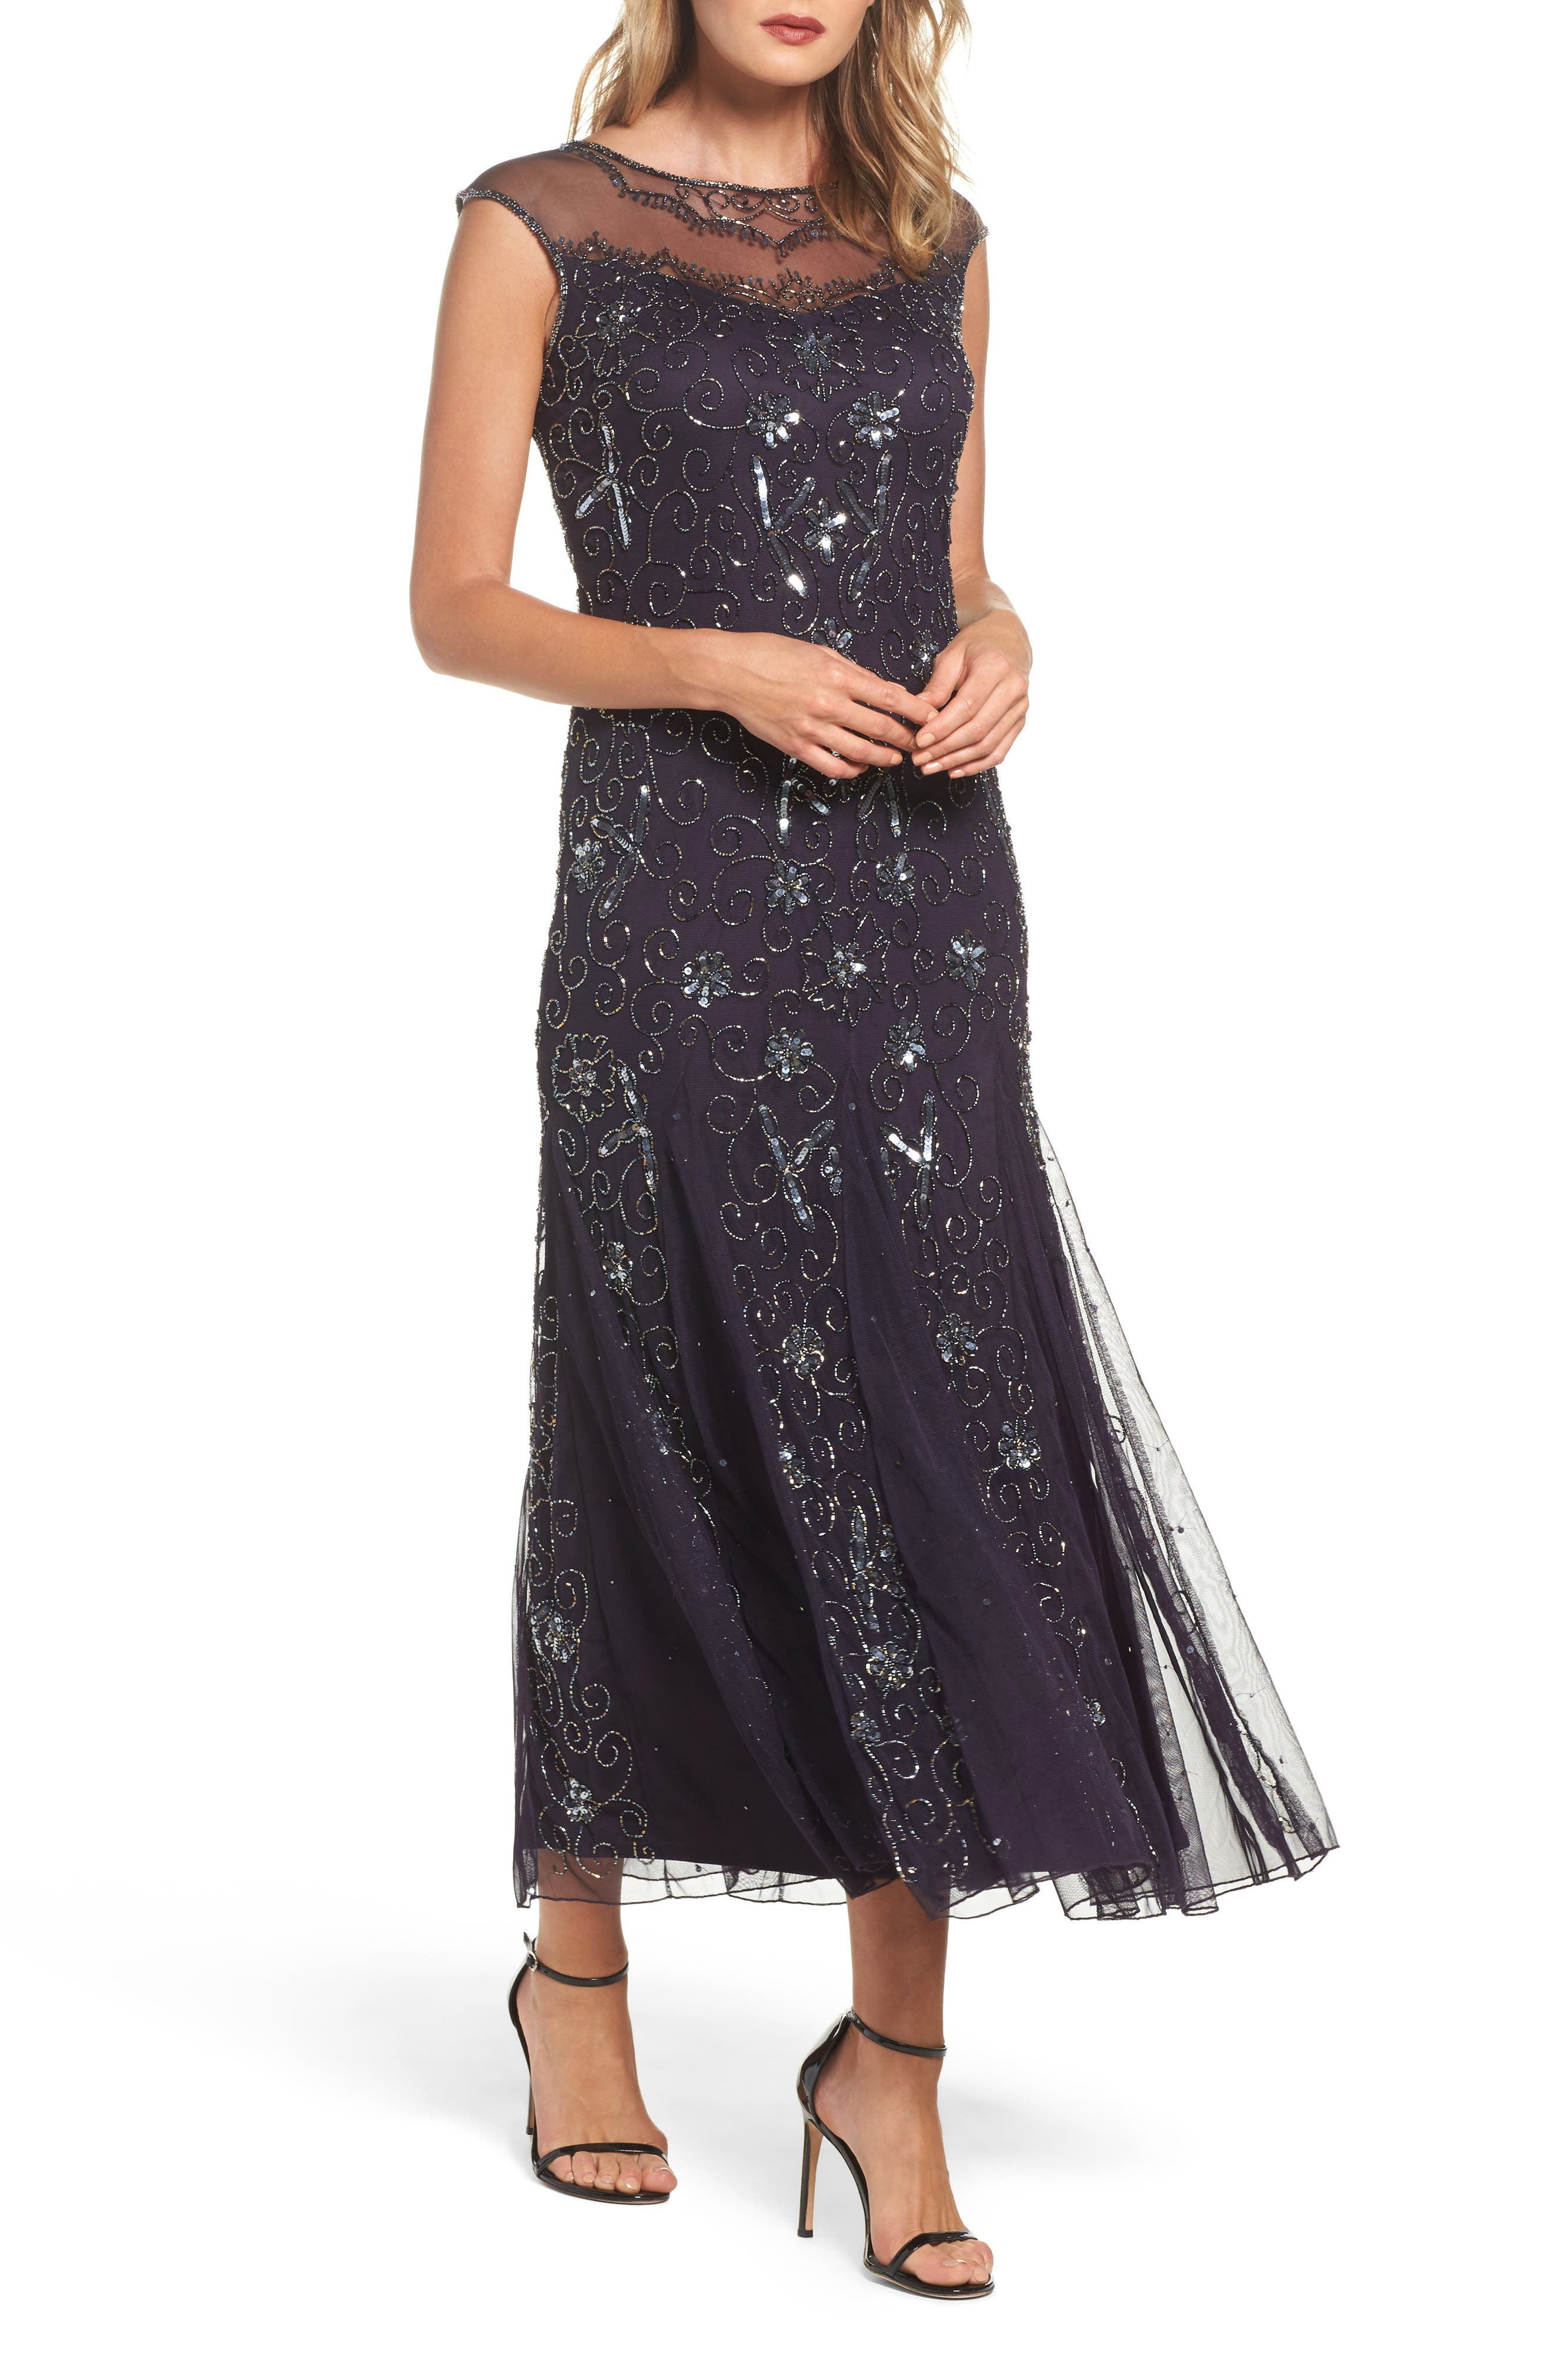 Main Image - Pisarro Nights Embellished Midi Dress (Regular & Petite)